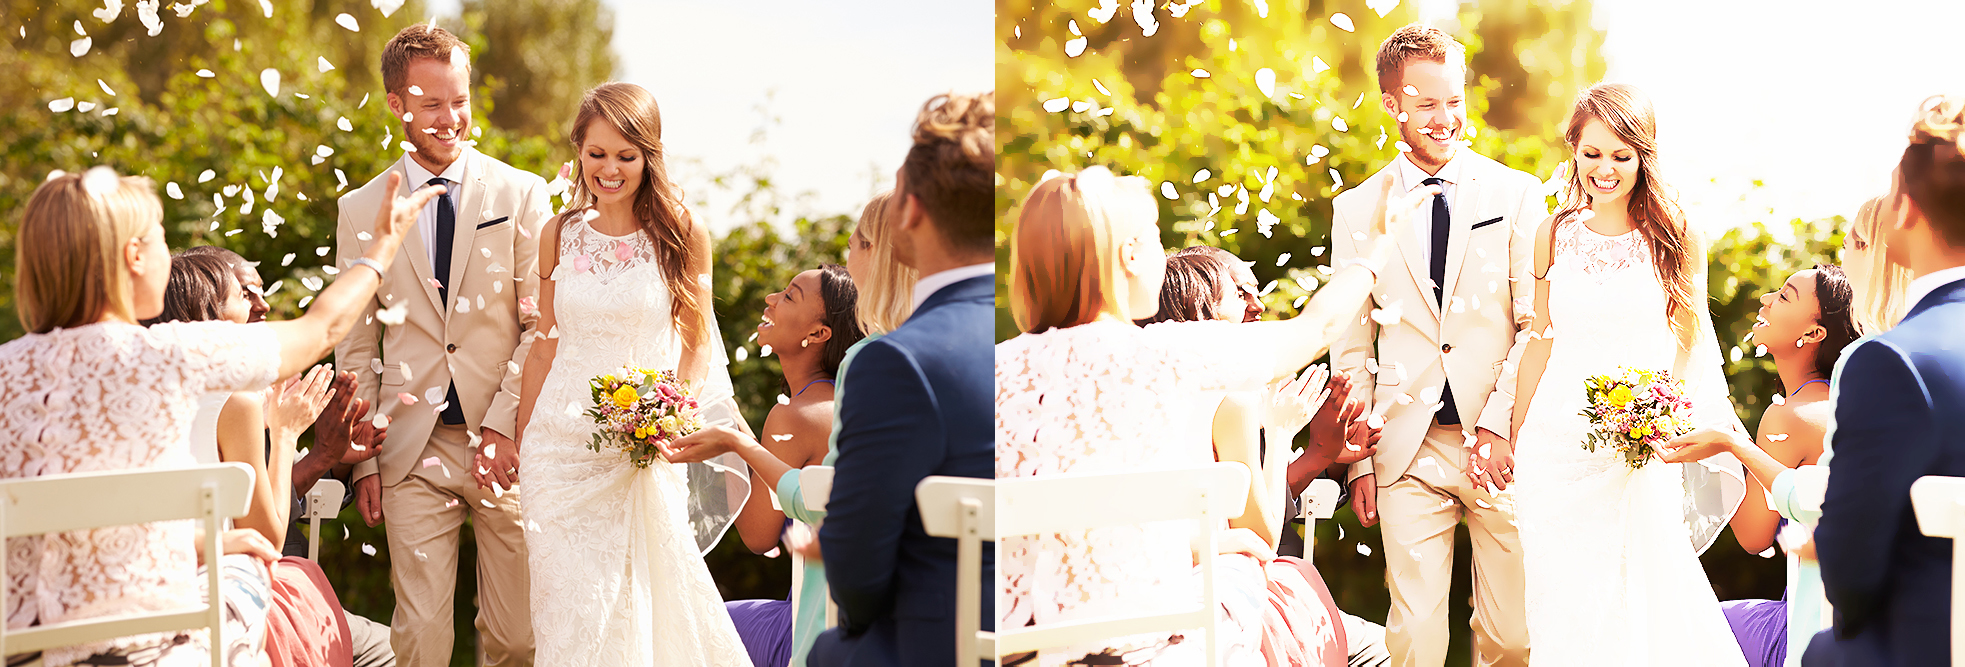 143 Wedding Photoshop Actions Collection (Action for photoshop CS5,CS6,CC) example image 2